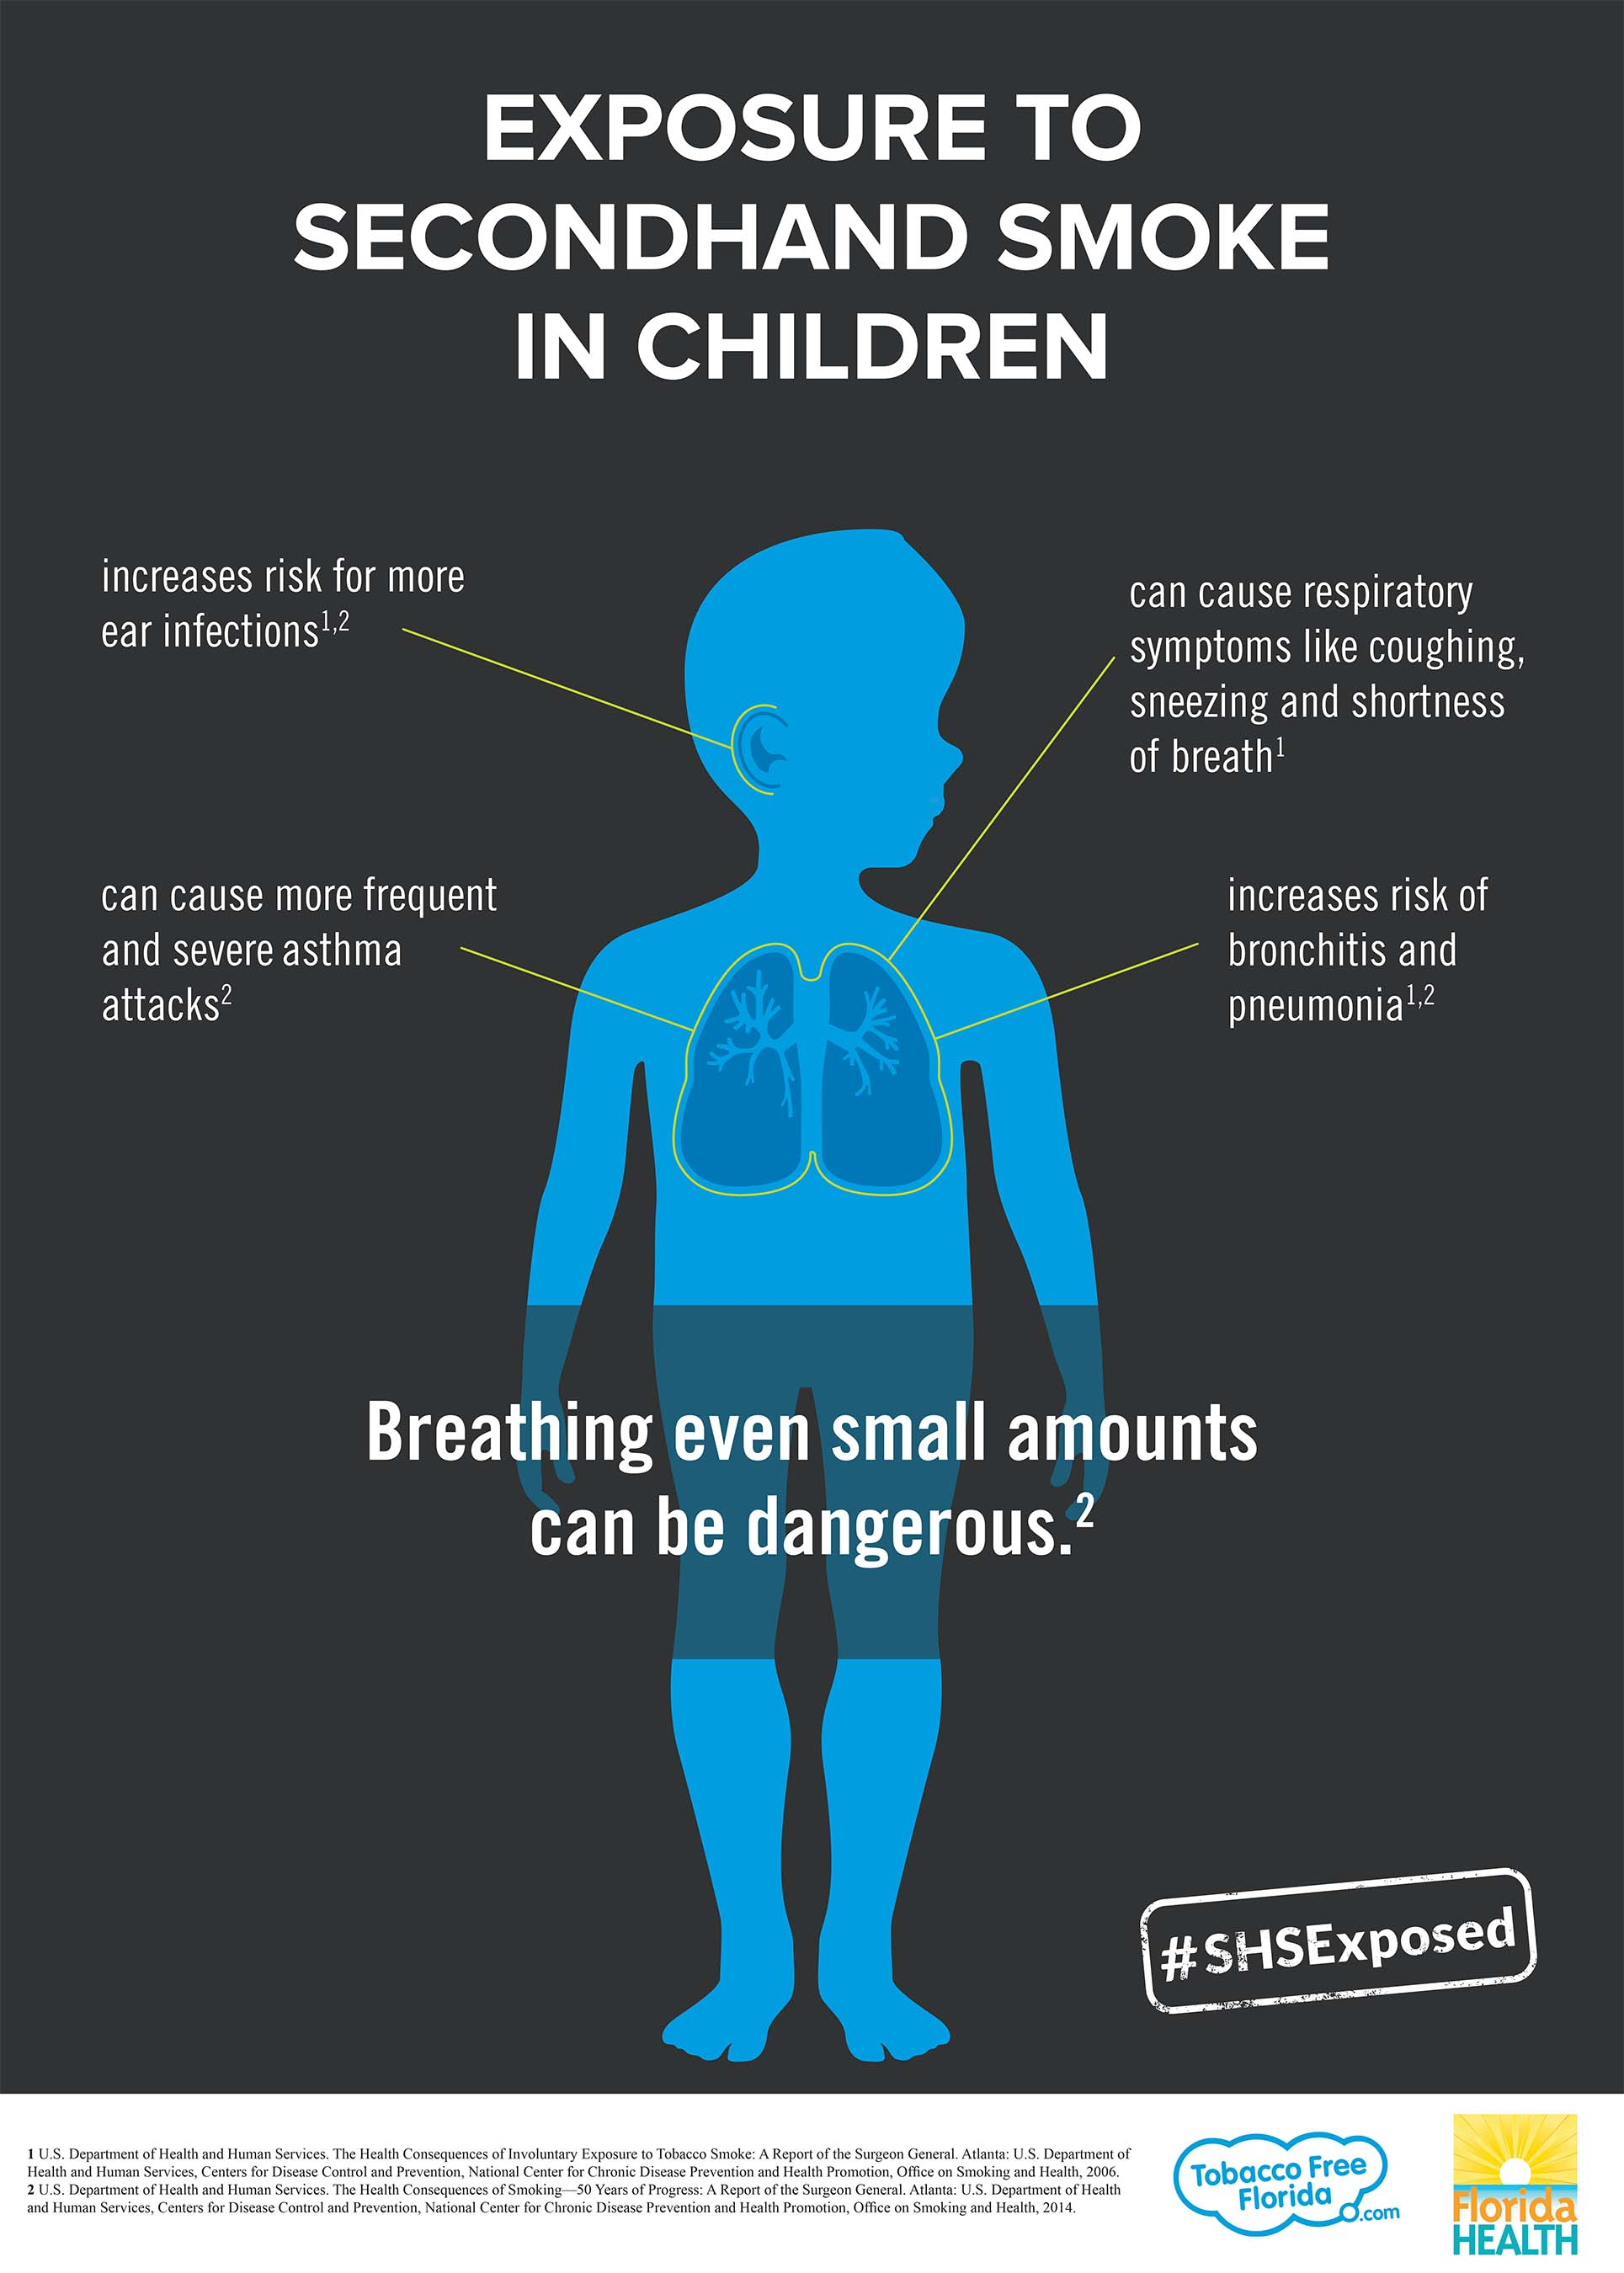 Tobacco Free Florida Exposes The Risks Of Secondhand Smoke